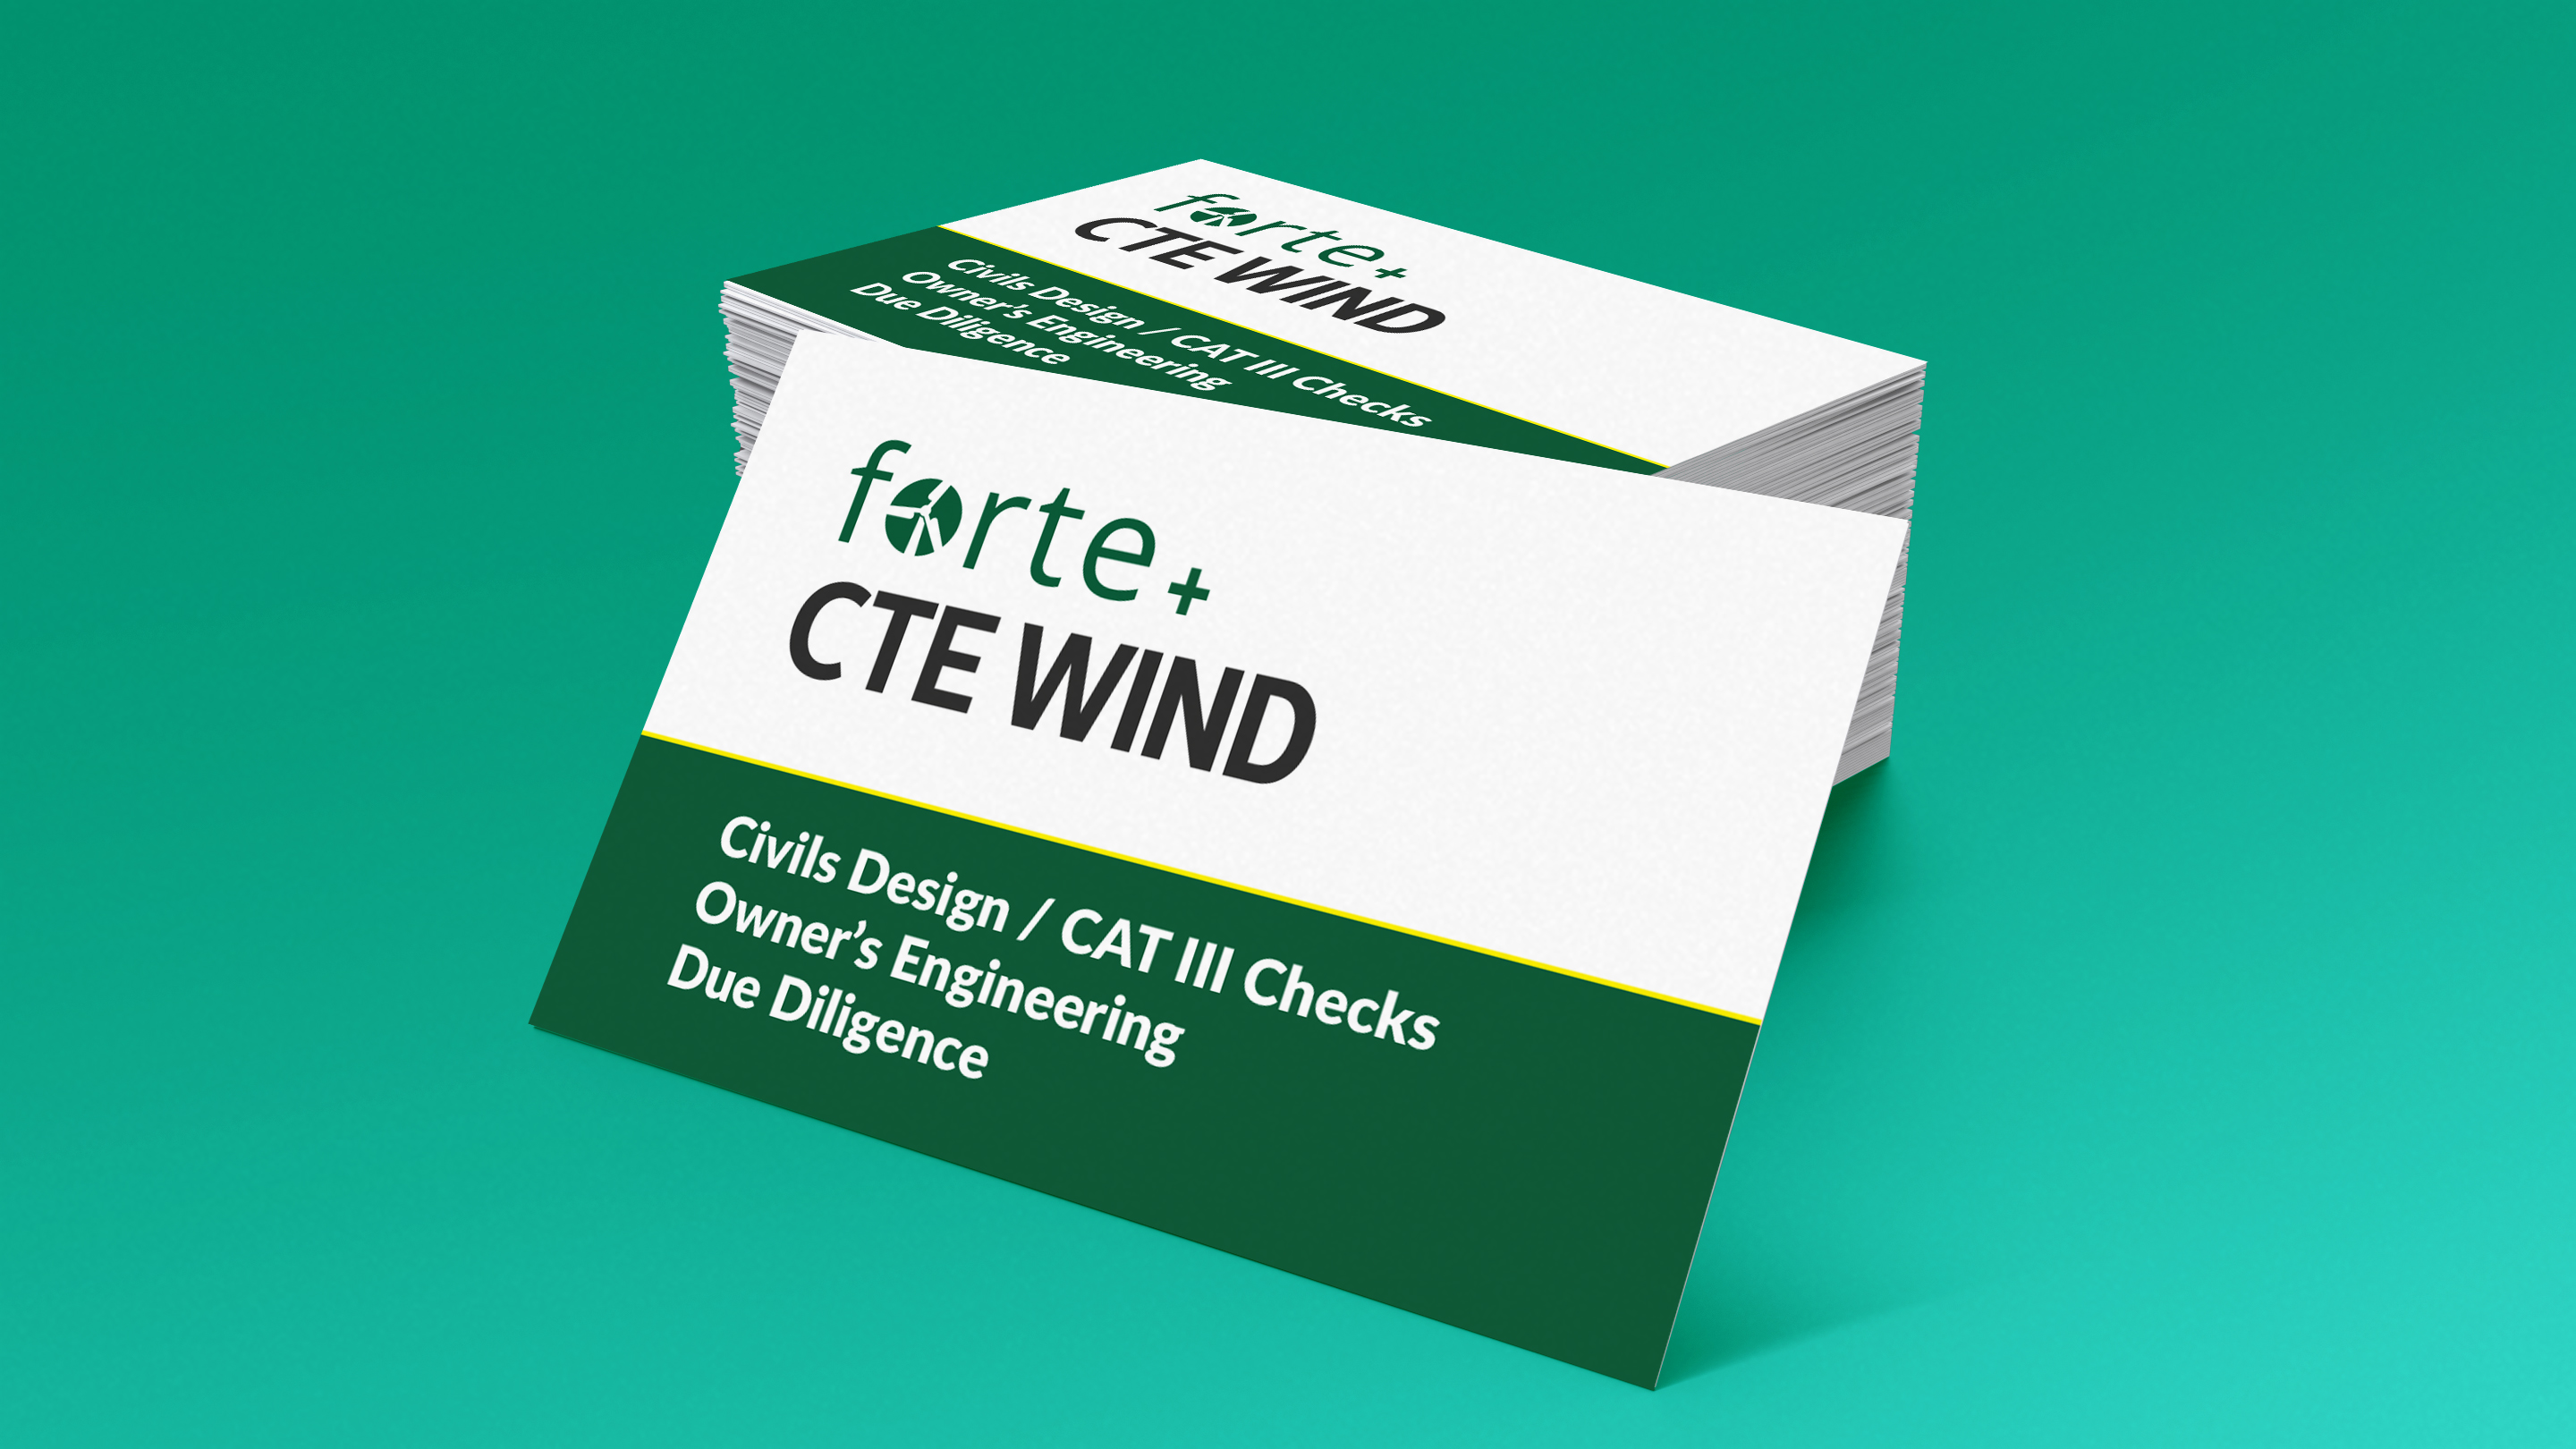 forte-business-cards